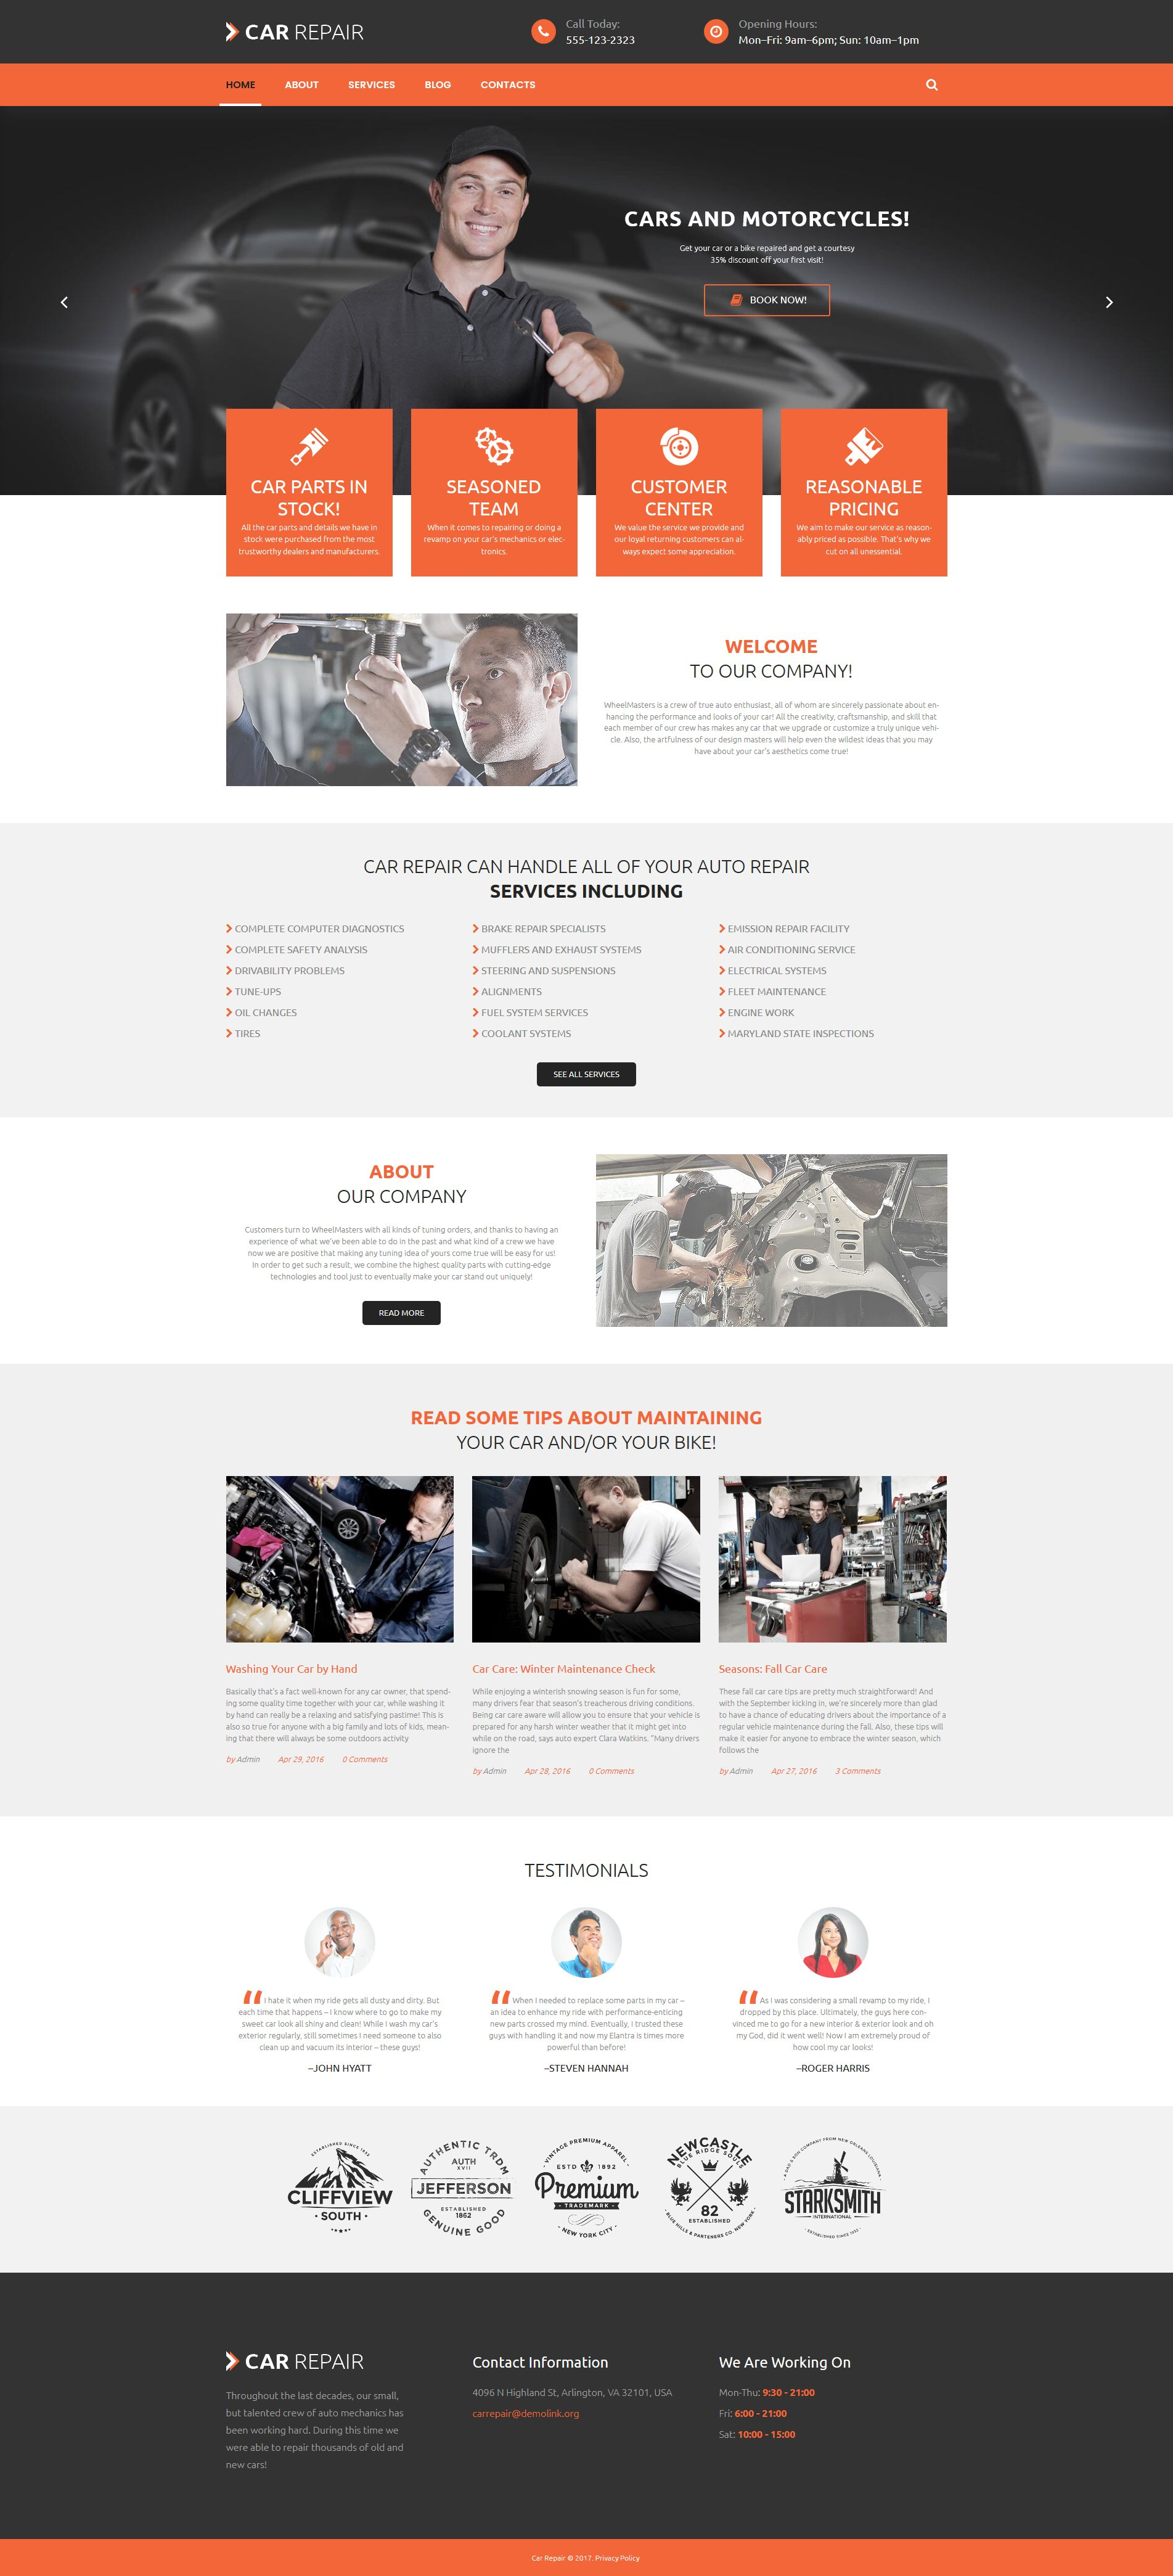 The Car Repair WordPress Design 53985, one of the best WordPress themes of its kind (cars, most popular), also known as car repair WordPress template, recovery WordPress template, repairs WordPress template, automobile WordPress template, auto repair WordPress template, maintenance WordPress template, service care WordPress template, advice WordPress template, station and related with car repair, recovery, repairs, automobile, auto repair, maintenance, service care, advice, station, etc.